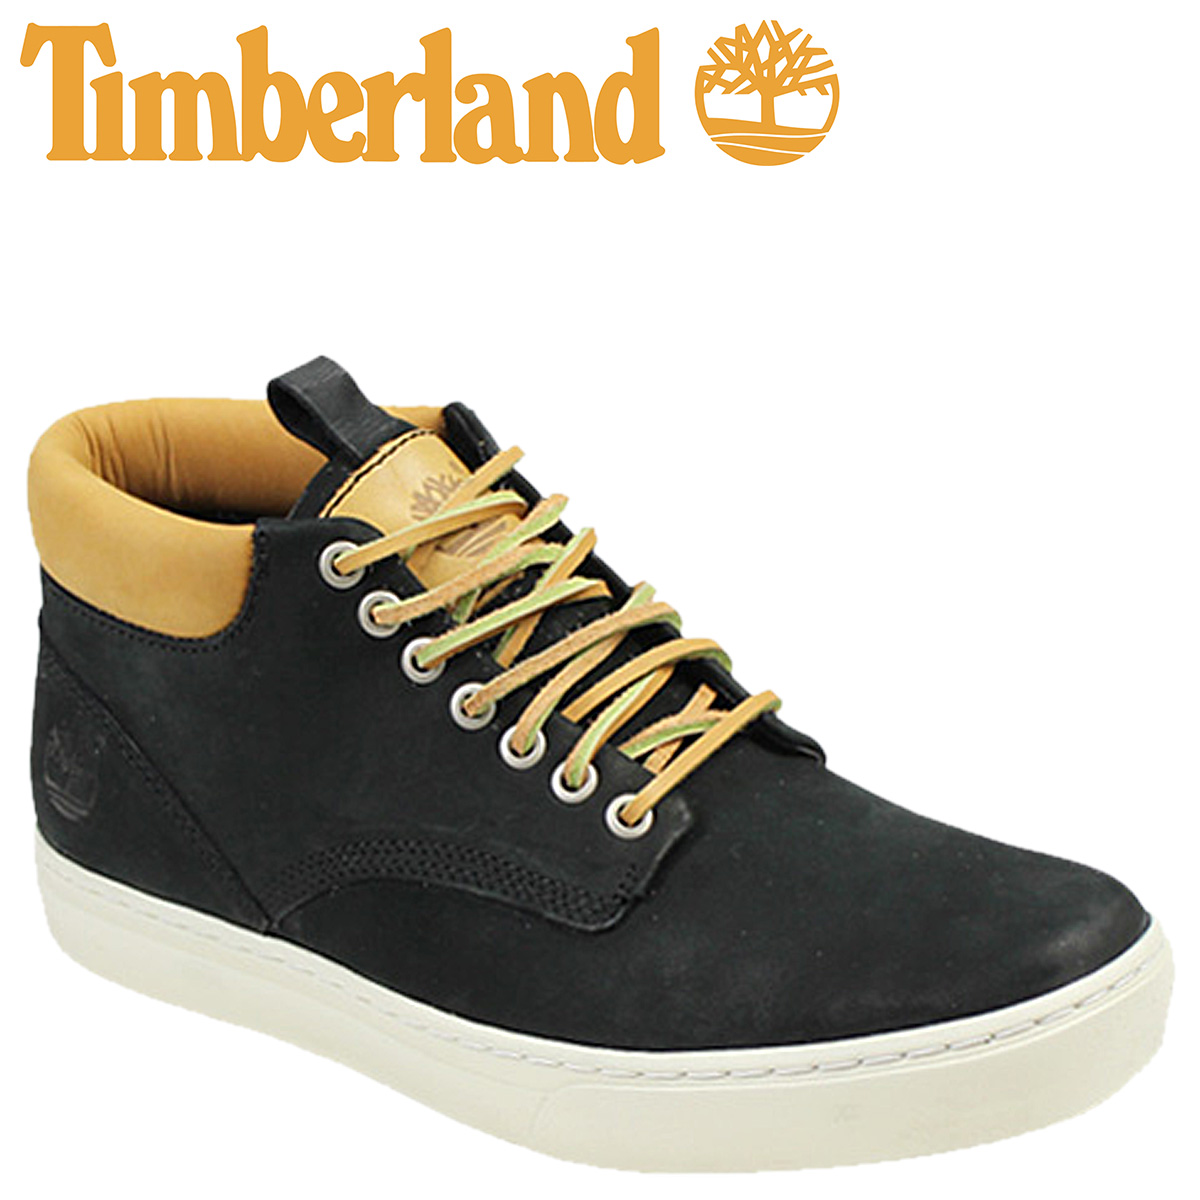 Timberland Timberland ground goalkeepers adventure cup sole chukka boots EARTHKEEPERS ADVENTURE CUPSOLE CHUKKA leather 3,301A black black men